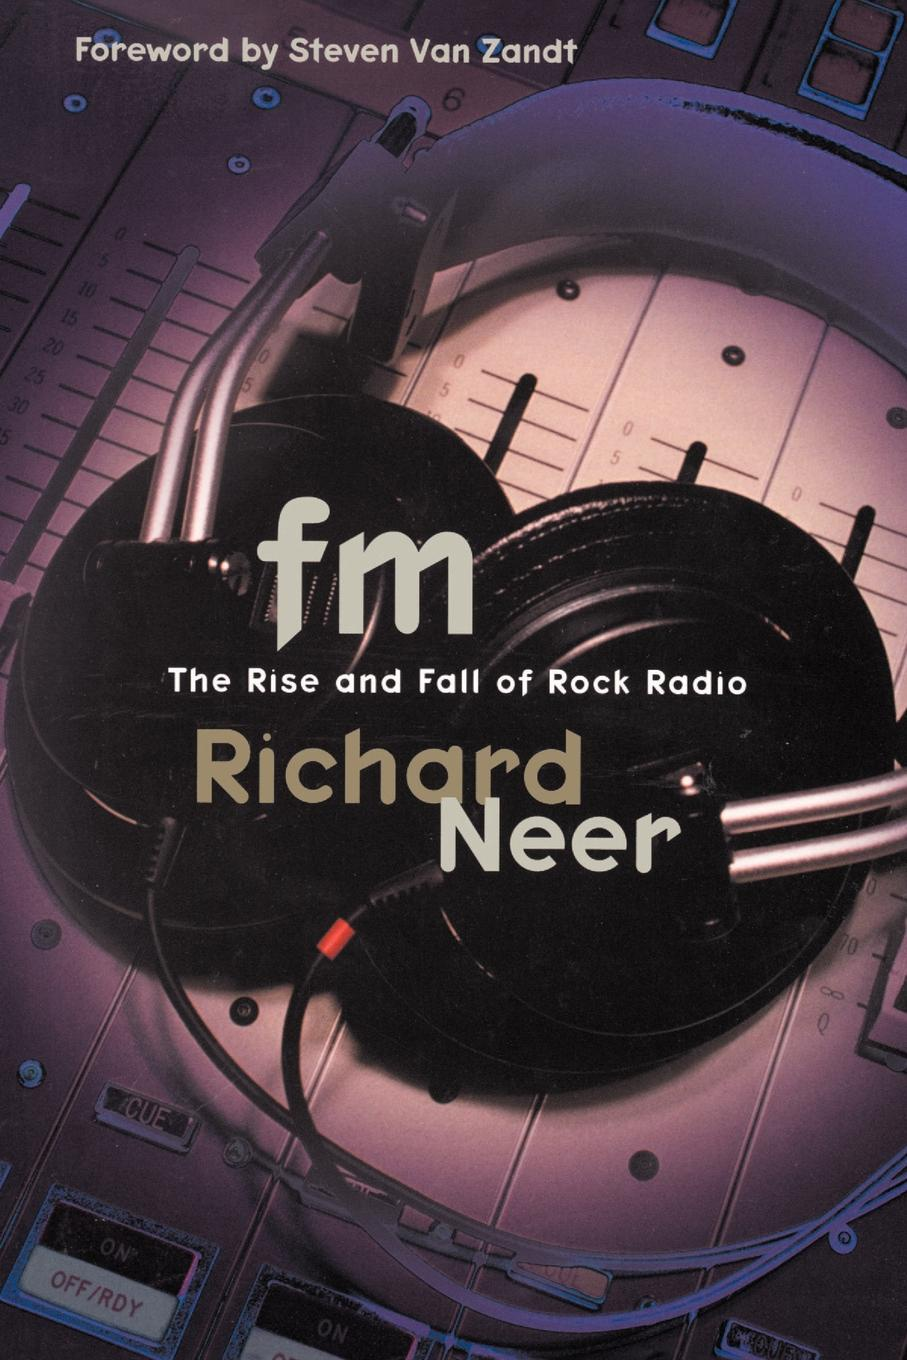 Richard Neer FM. The Rise and Fall of Rock Radio studebaker sb6052 wooden turntable with am fm radio